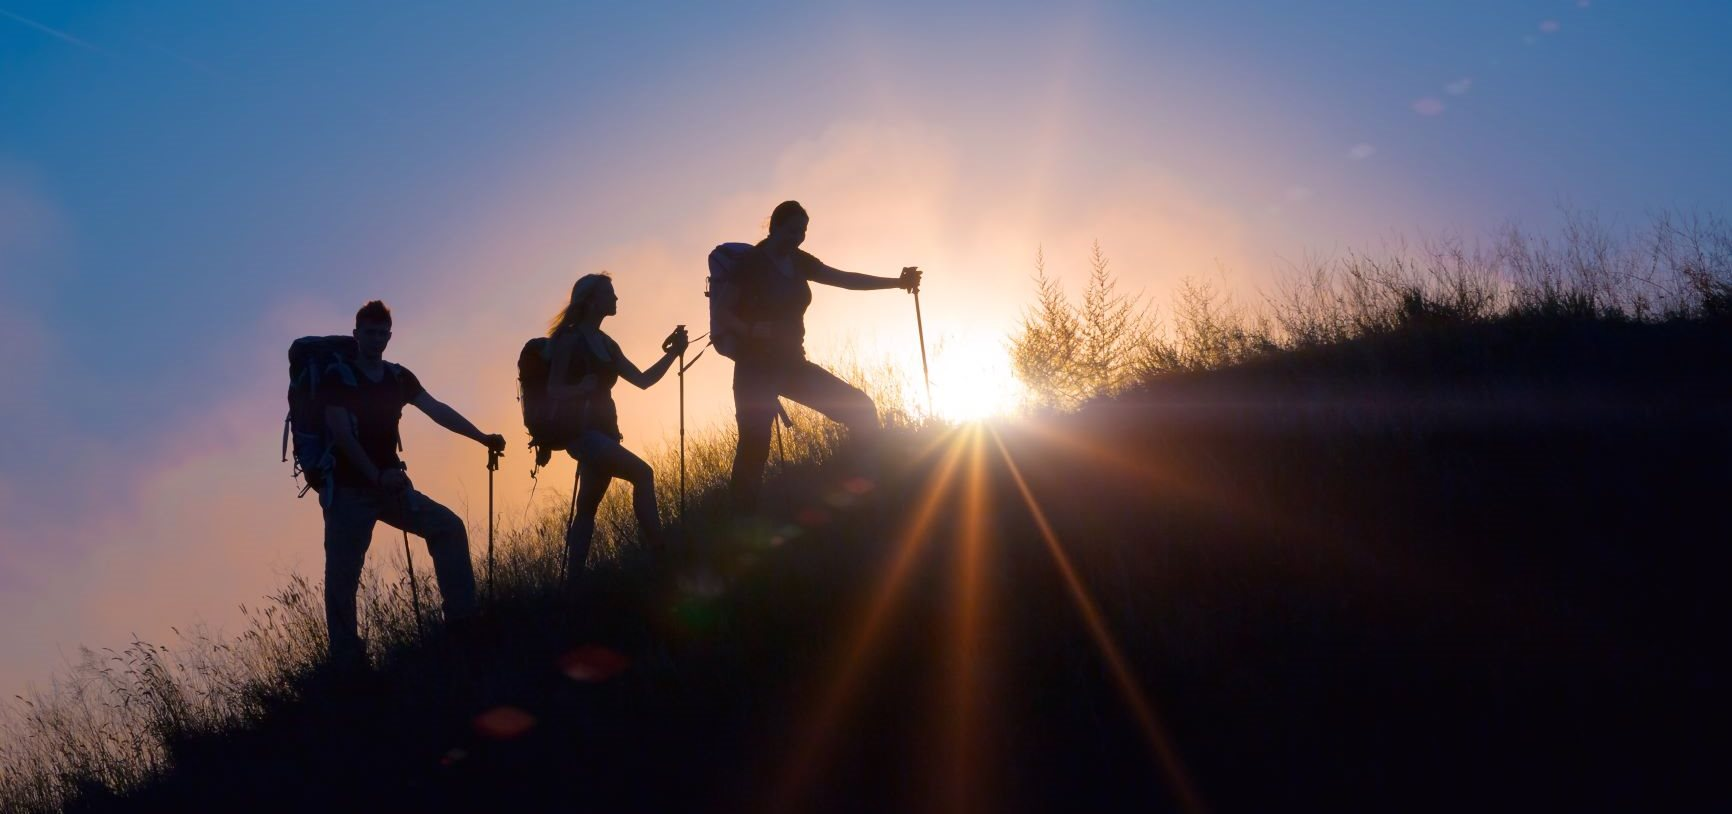 Three people hiking uphill with the sunset behind